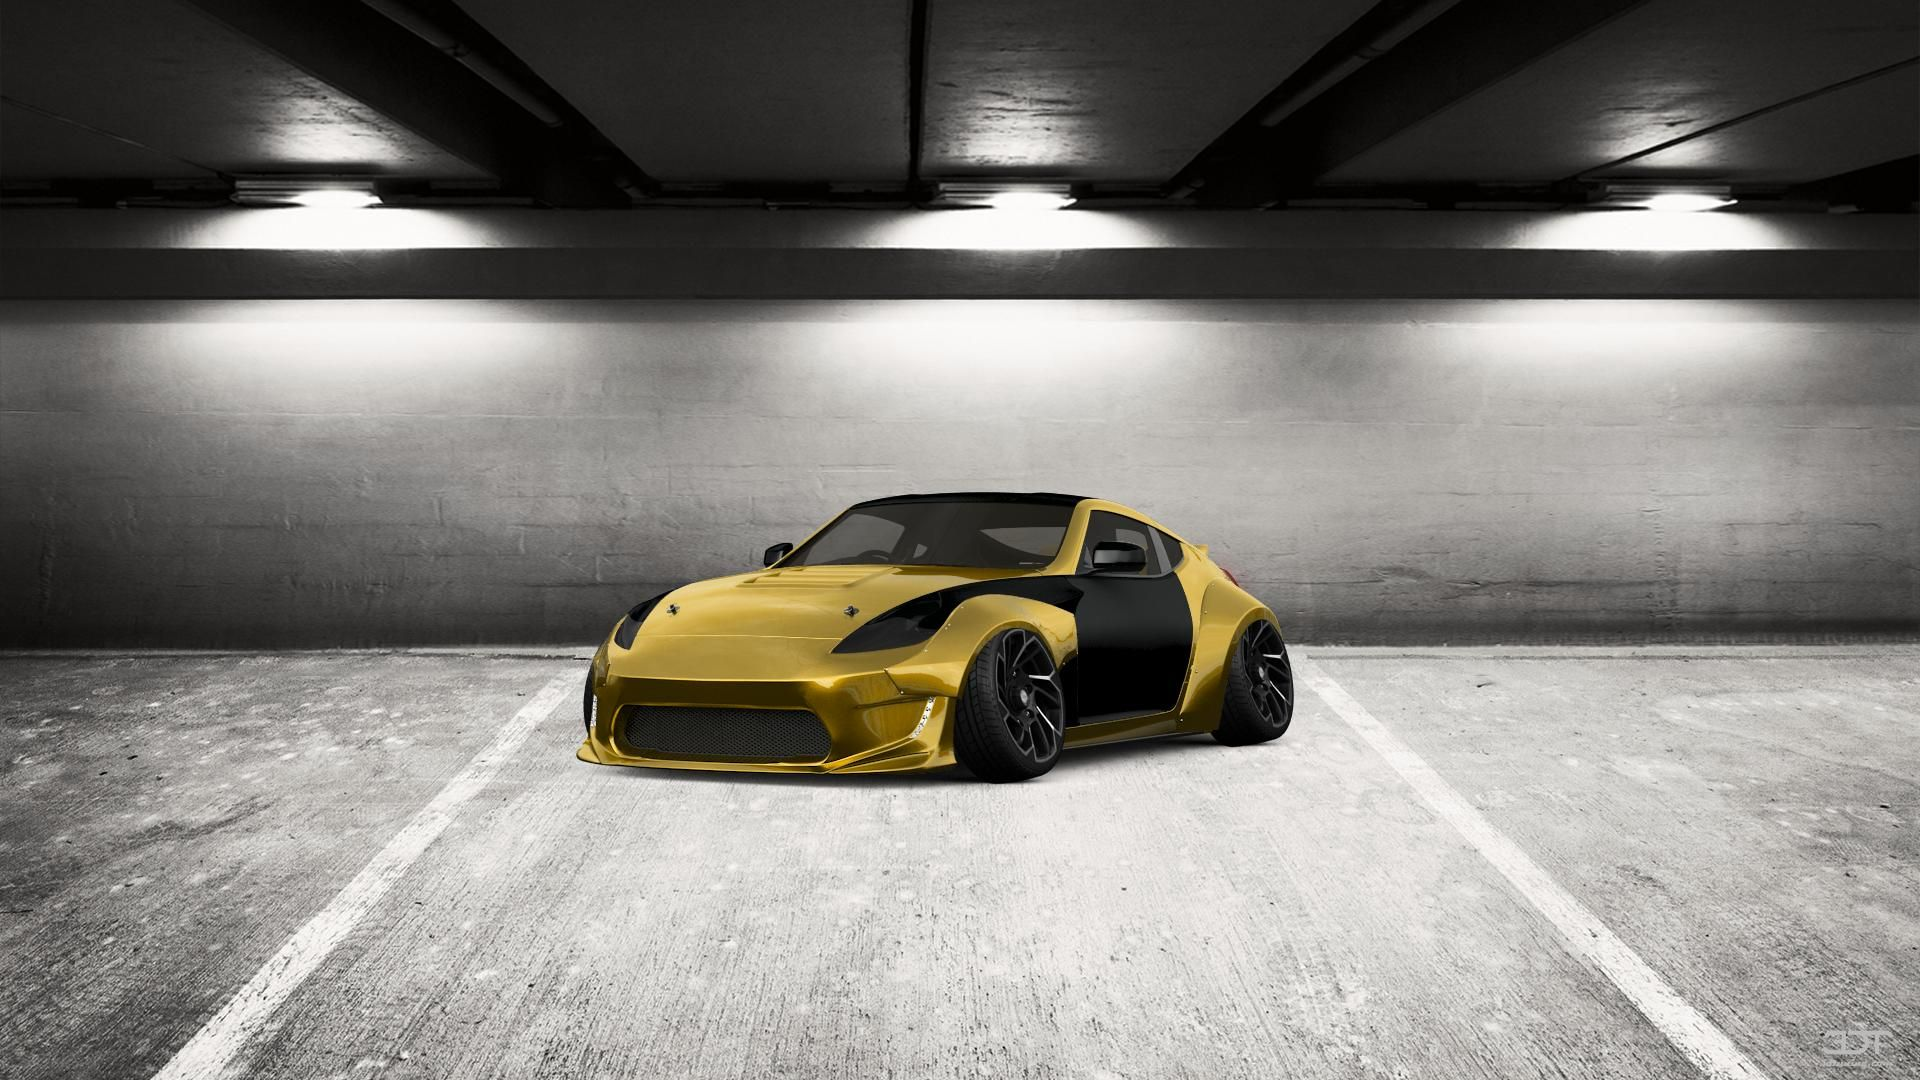 Checkout my tuning #Nissan 370Z 2015 at 3DTuning #3dtuning #tuning